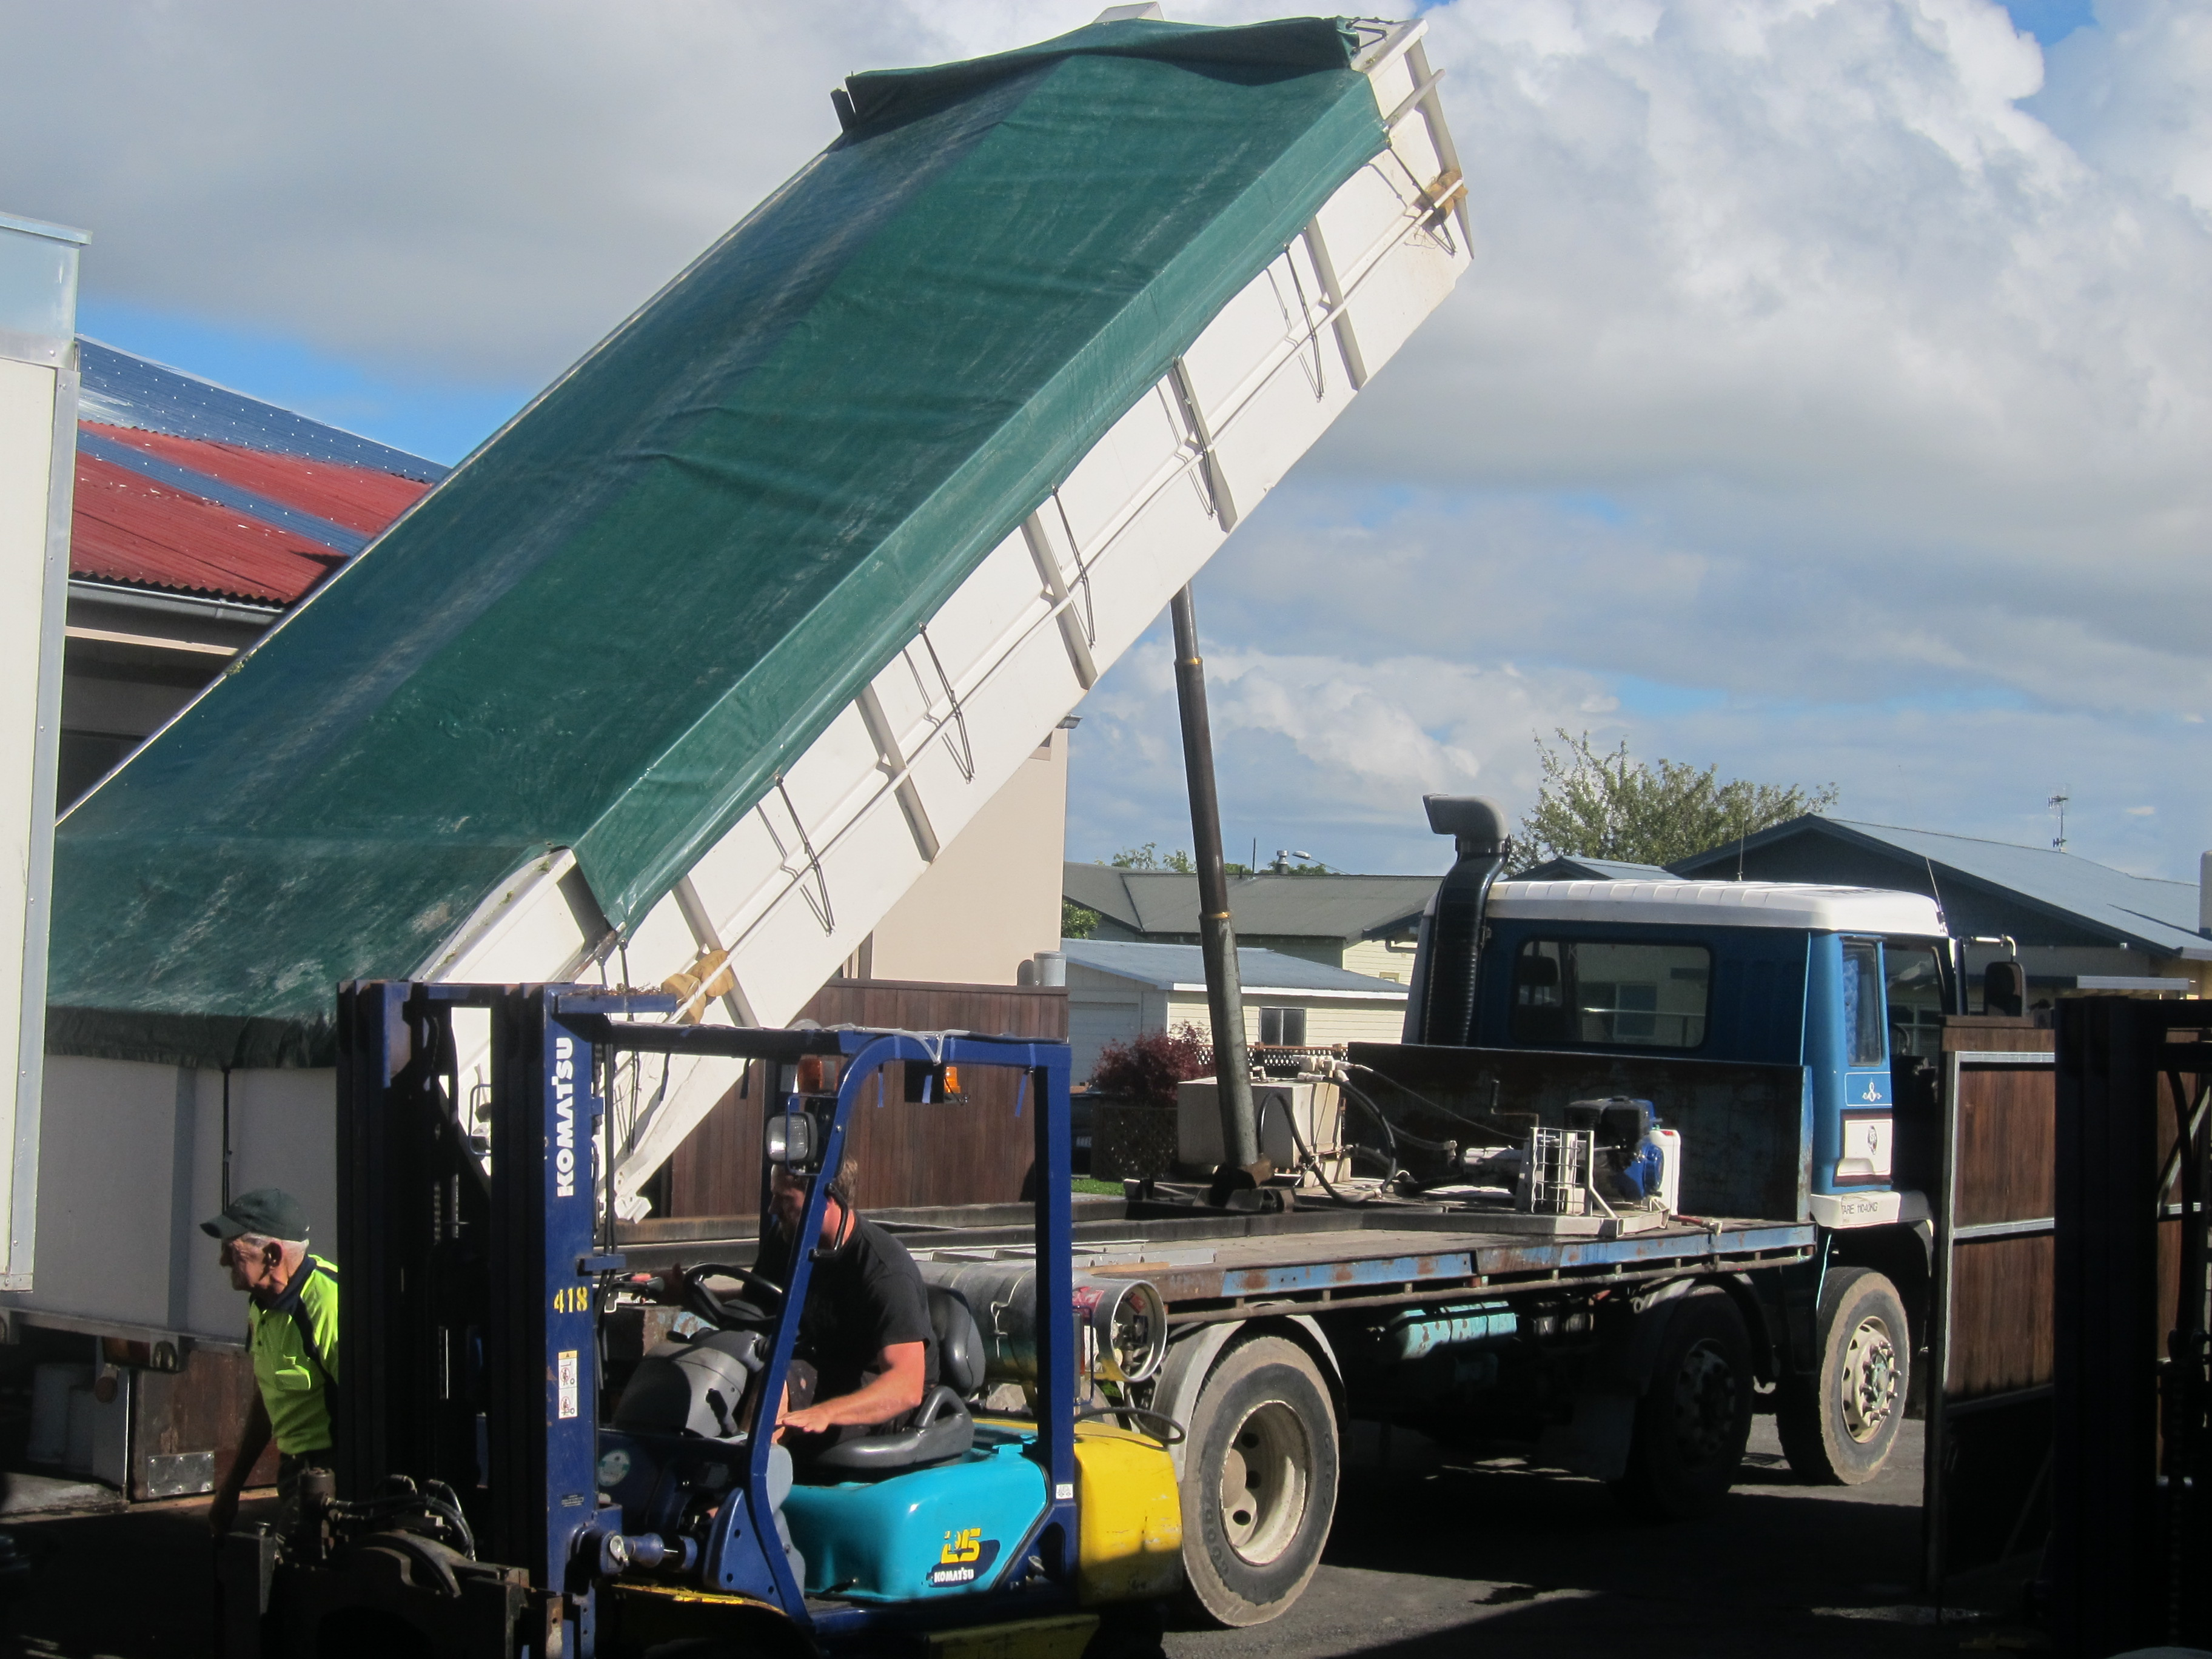 Truck Dumping Grapes Into The Receival Hopper